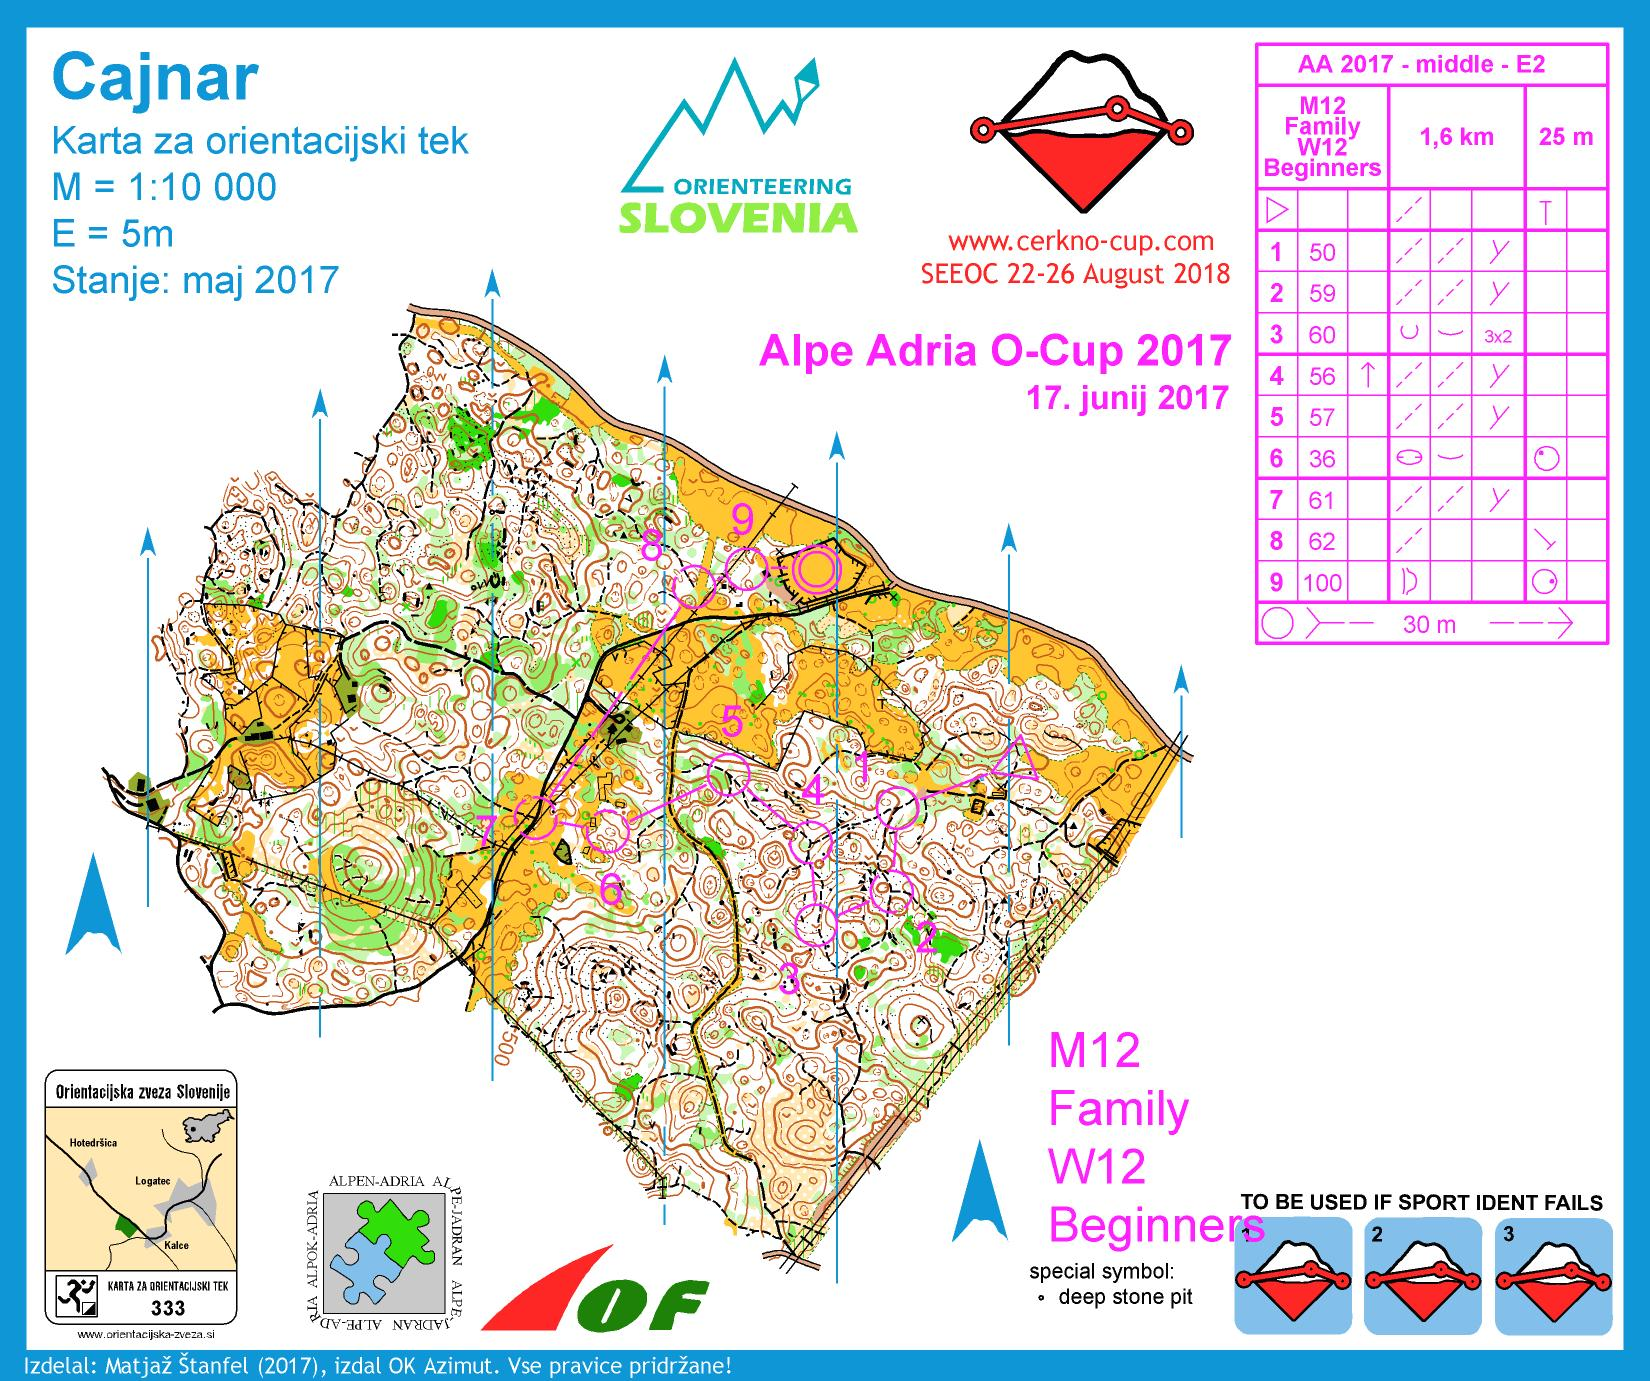 Alpe Adria Orienteering Cup - M12, W12 - middle distance (17. 06. 2017)